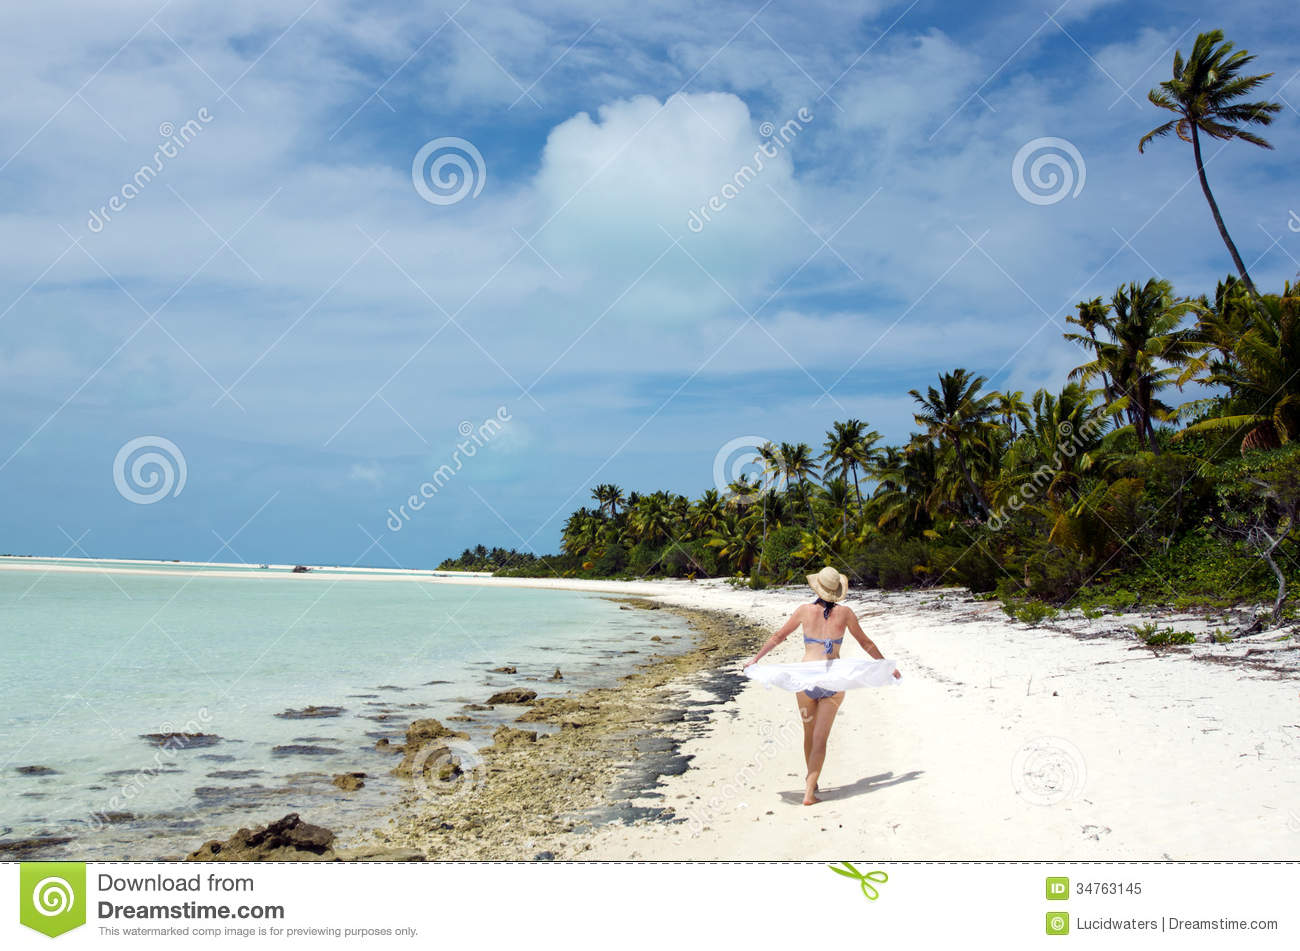 Deserted Tropical Island: Young Woman Relaxing On Deserted Tropical Island Stock